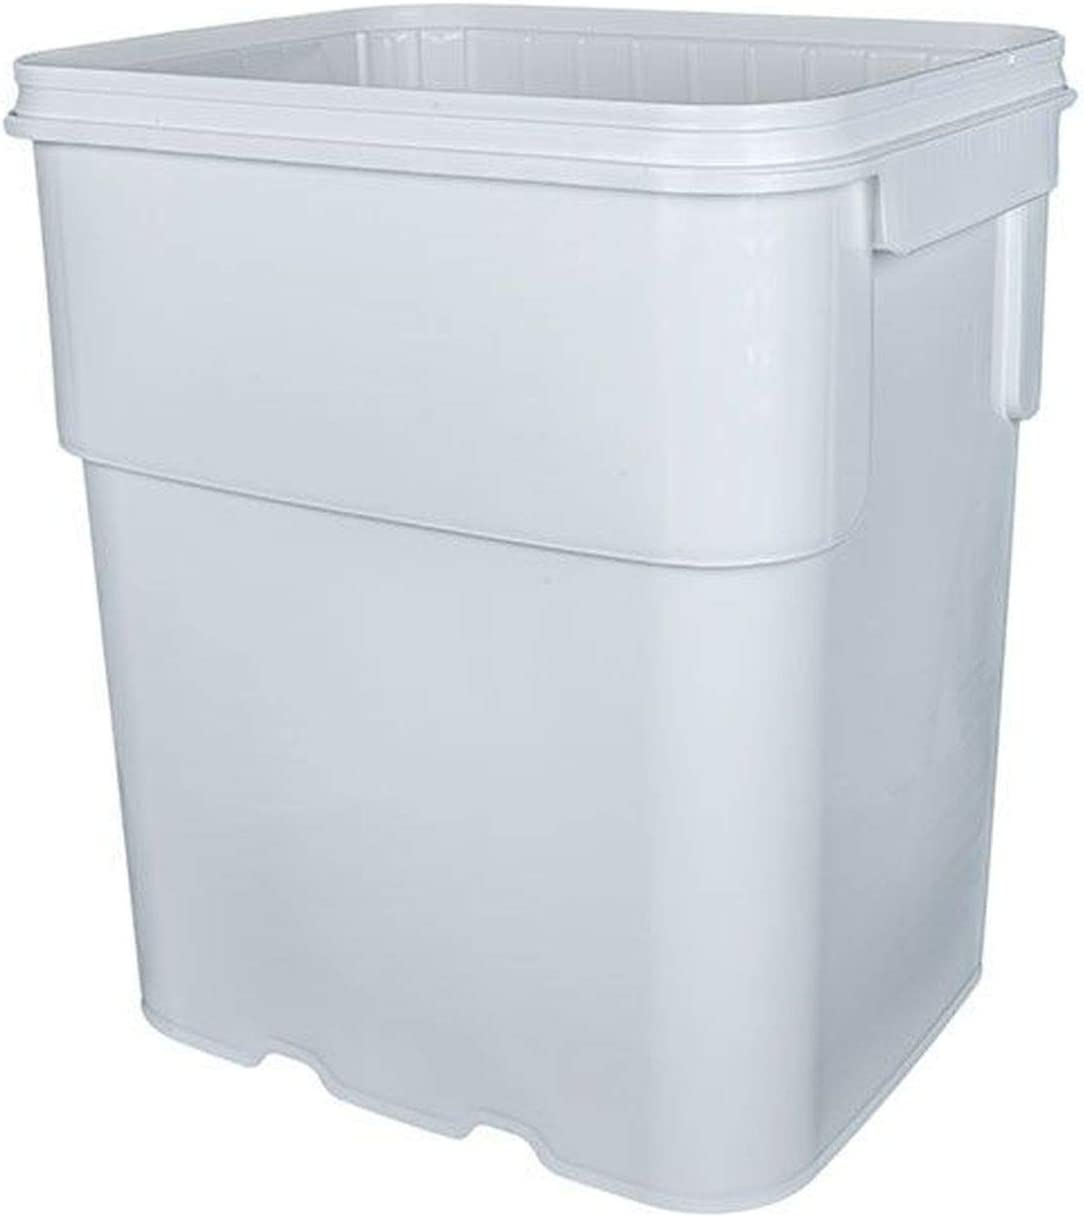 BayTec Containers 13 gal.Square Ez Stor Bucket Pail and lid, Recessed Handle and Lid